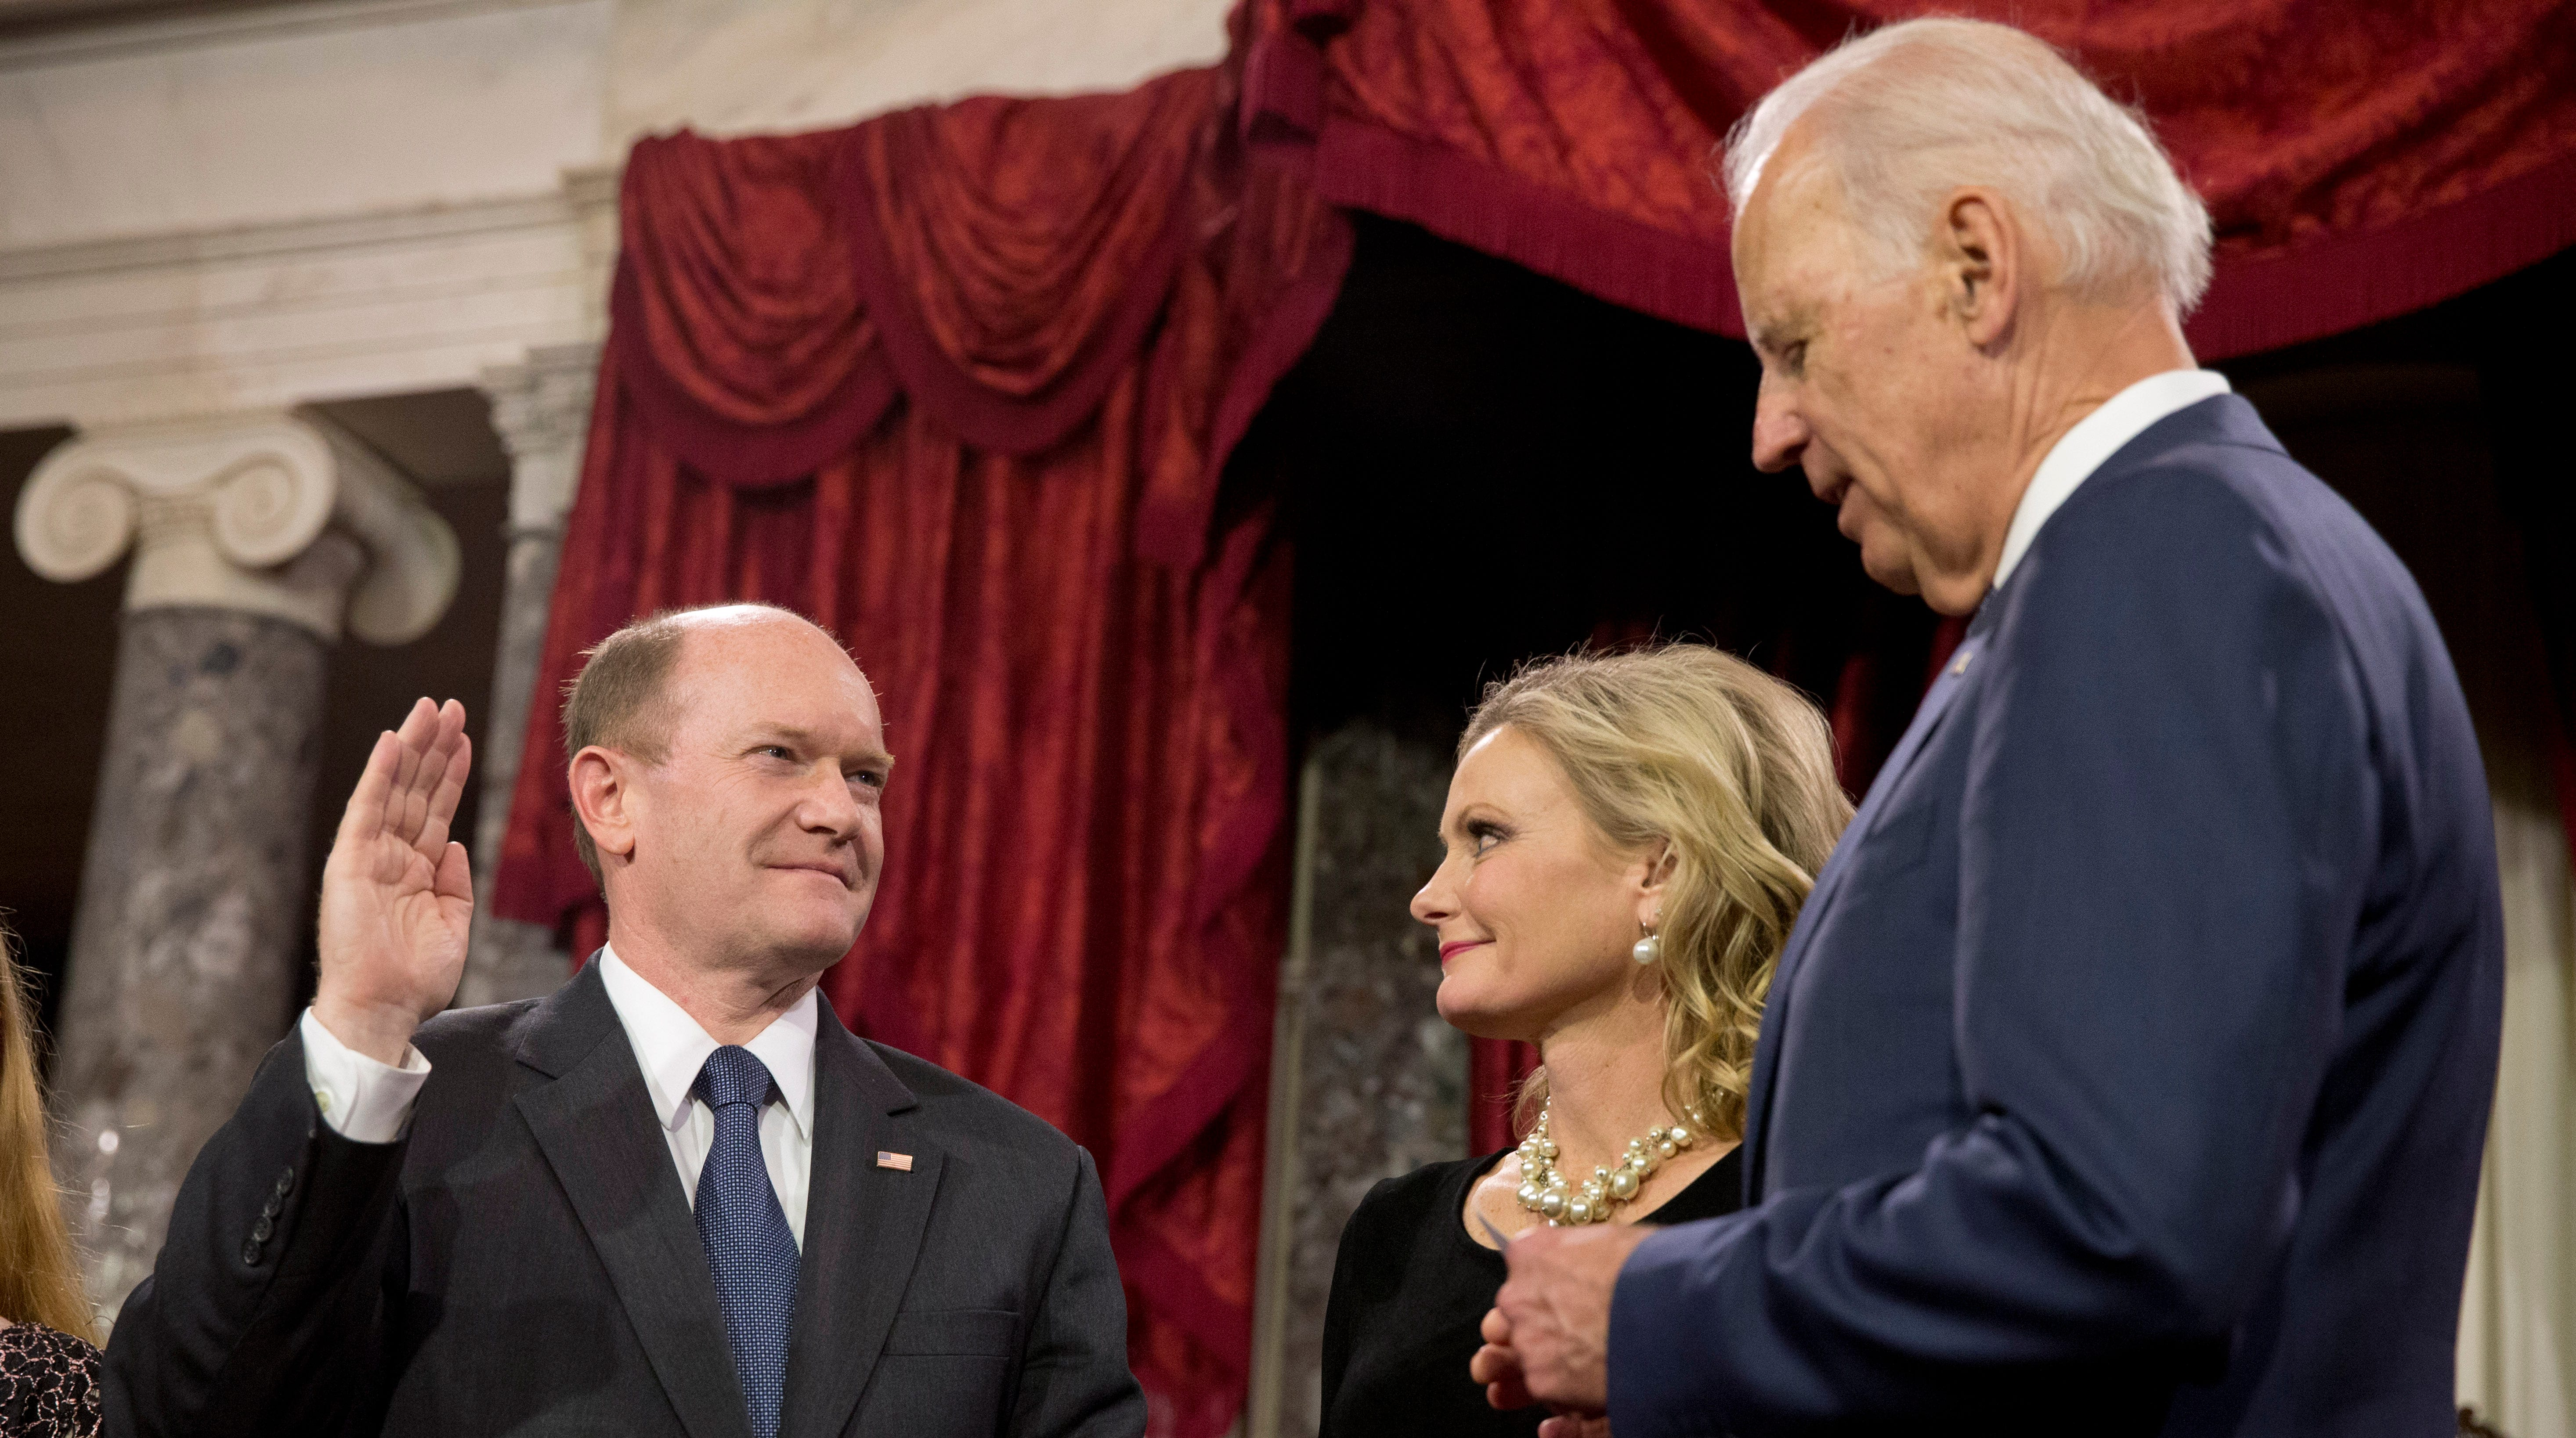 Former Vice President Joe Biden administers the Senate oath to Sen. Chris Coons, D-Del., with wife Annie Coons, during a ceremonial re-enactment swearing-in ceremony, Tuesday, Jan. 6, 2015, in the Old Senate Chamber of Capitol Hill in Washington.